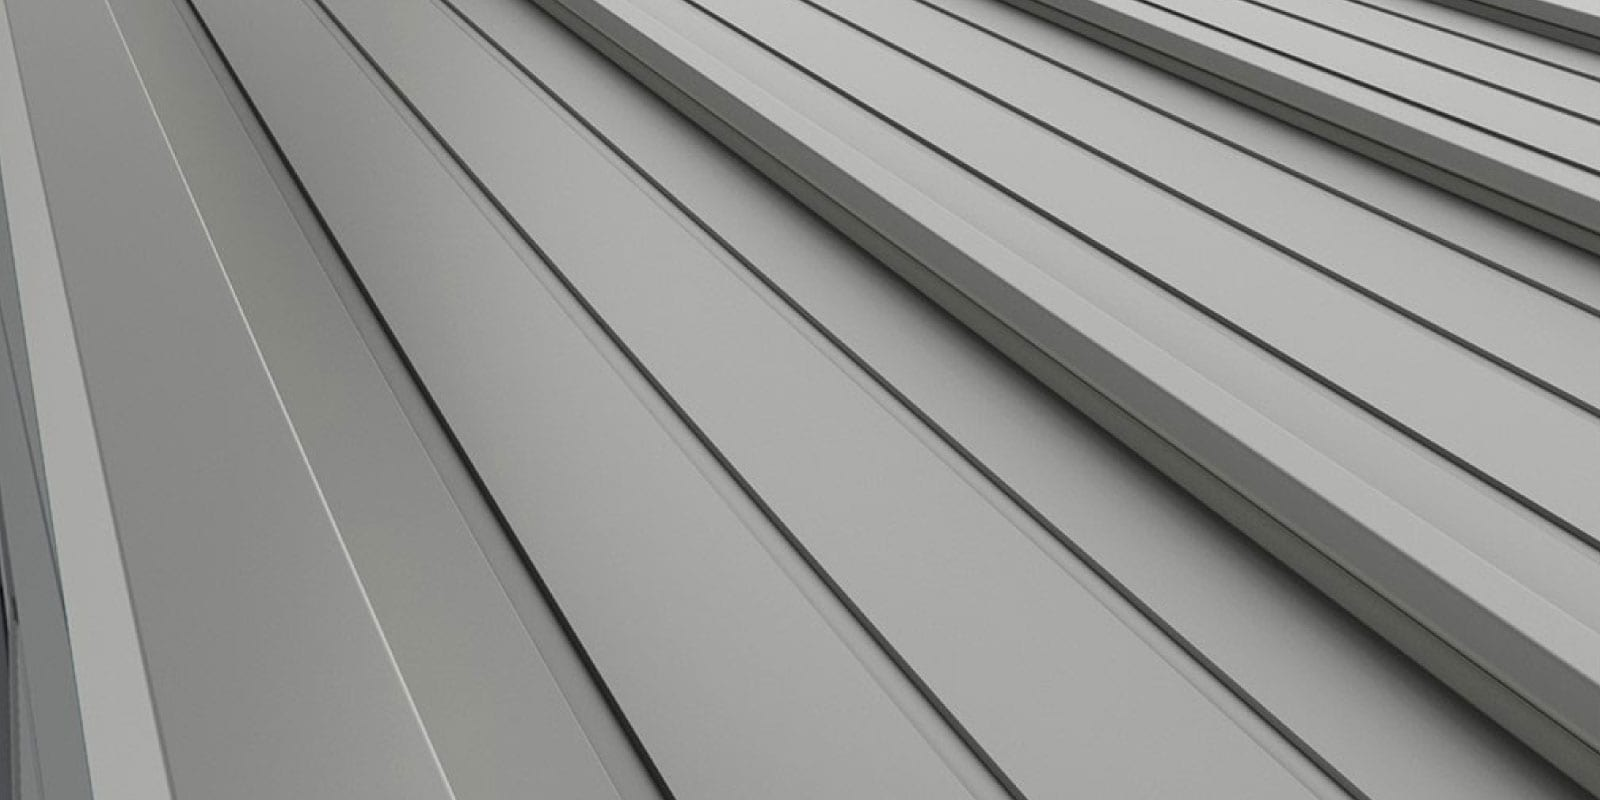 commercial metal roofers sydney